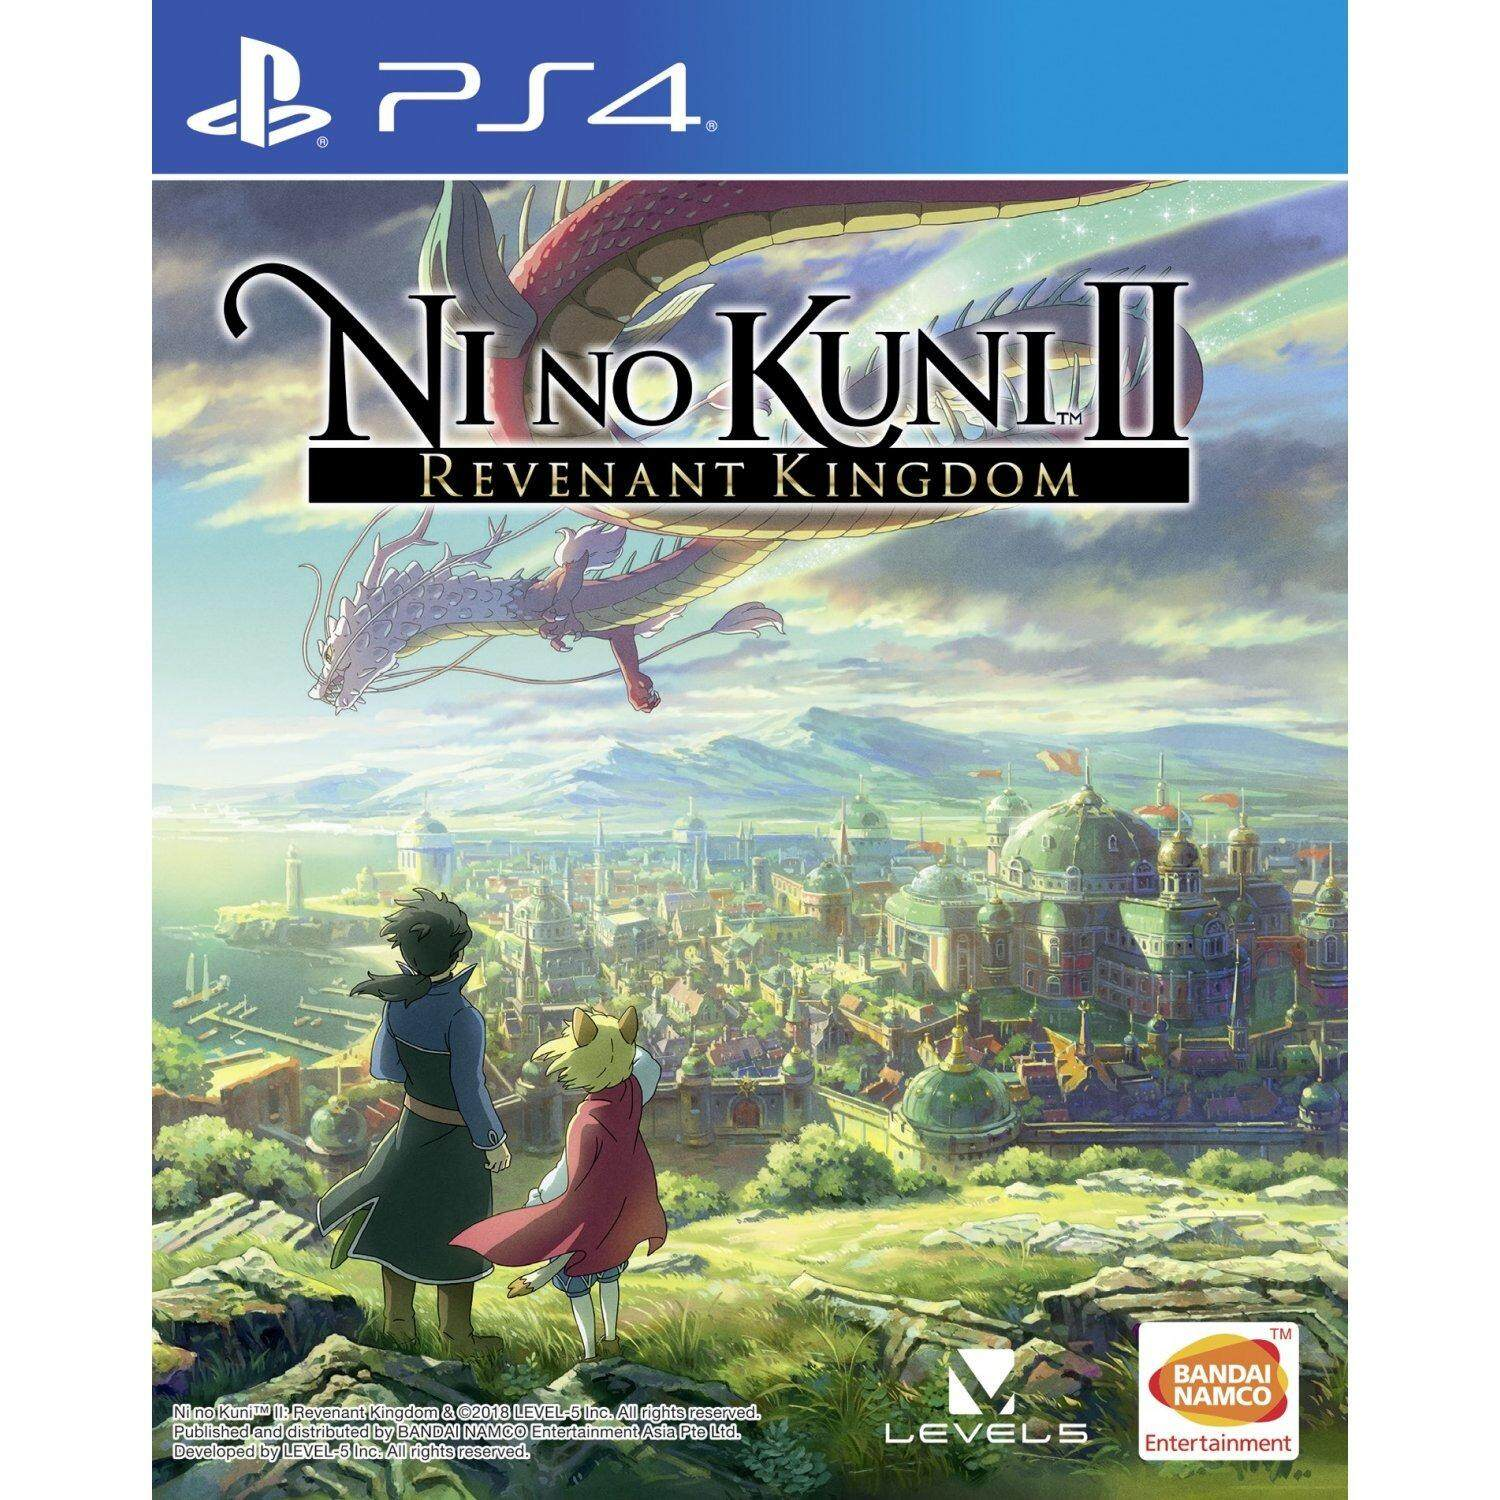 ps4 nino kuni 2 revenant kingdom ( english + zone 3 )